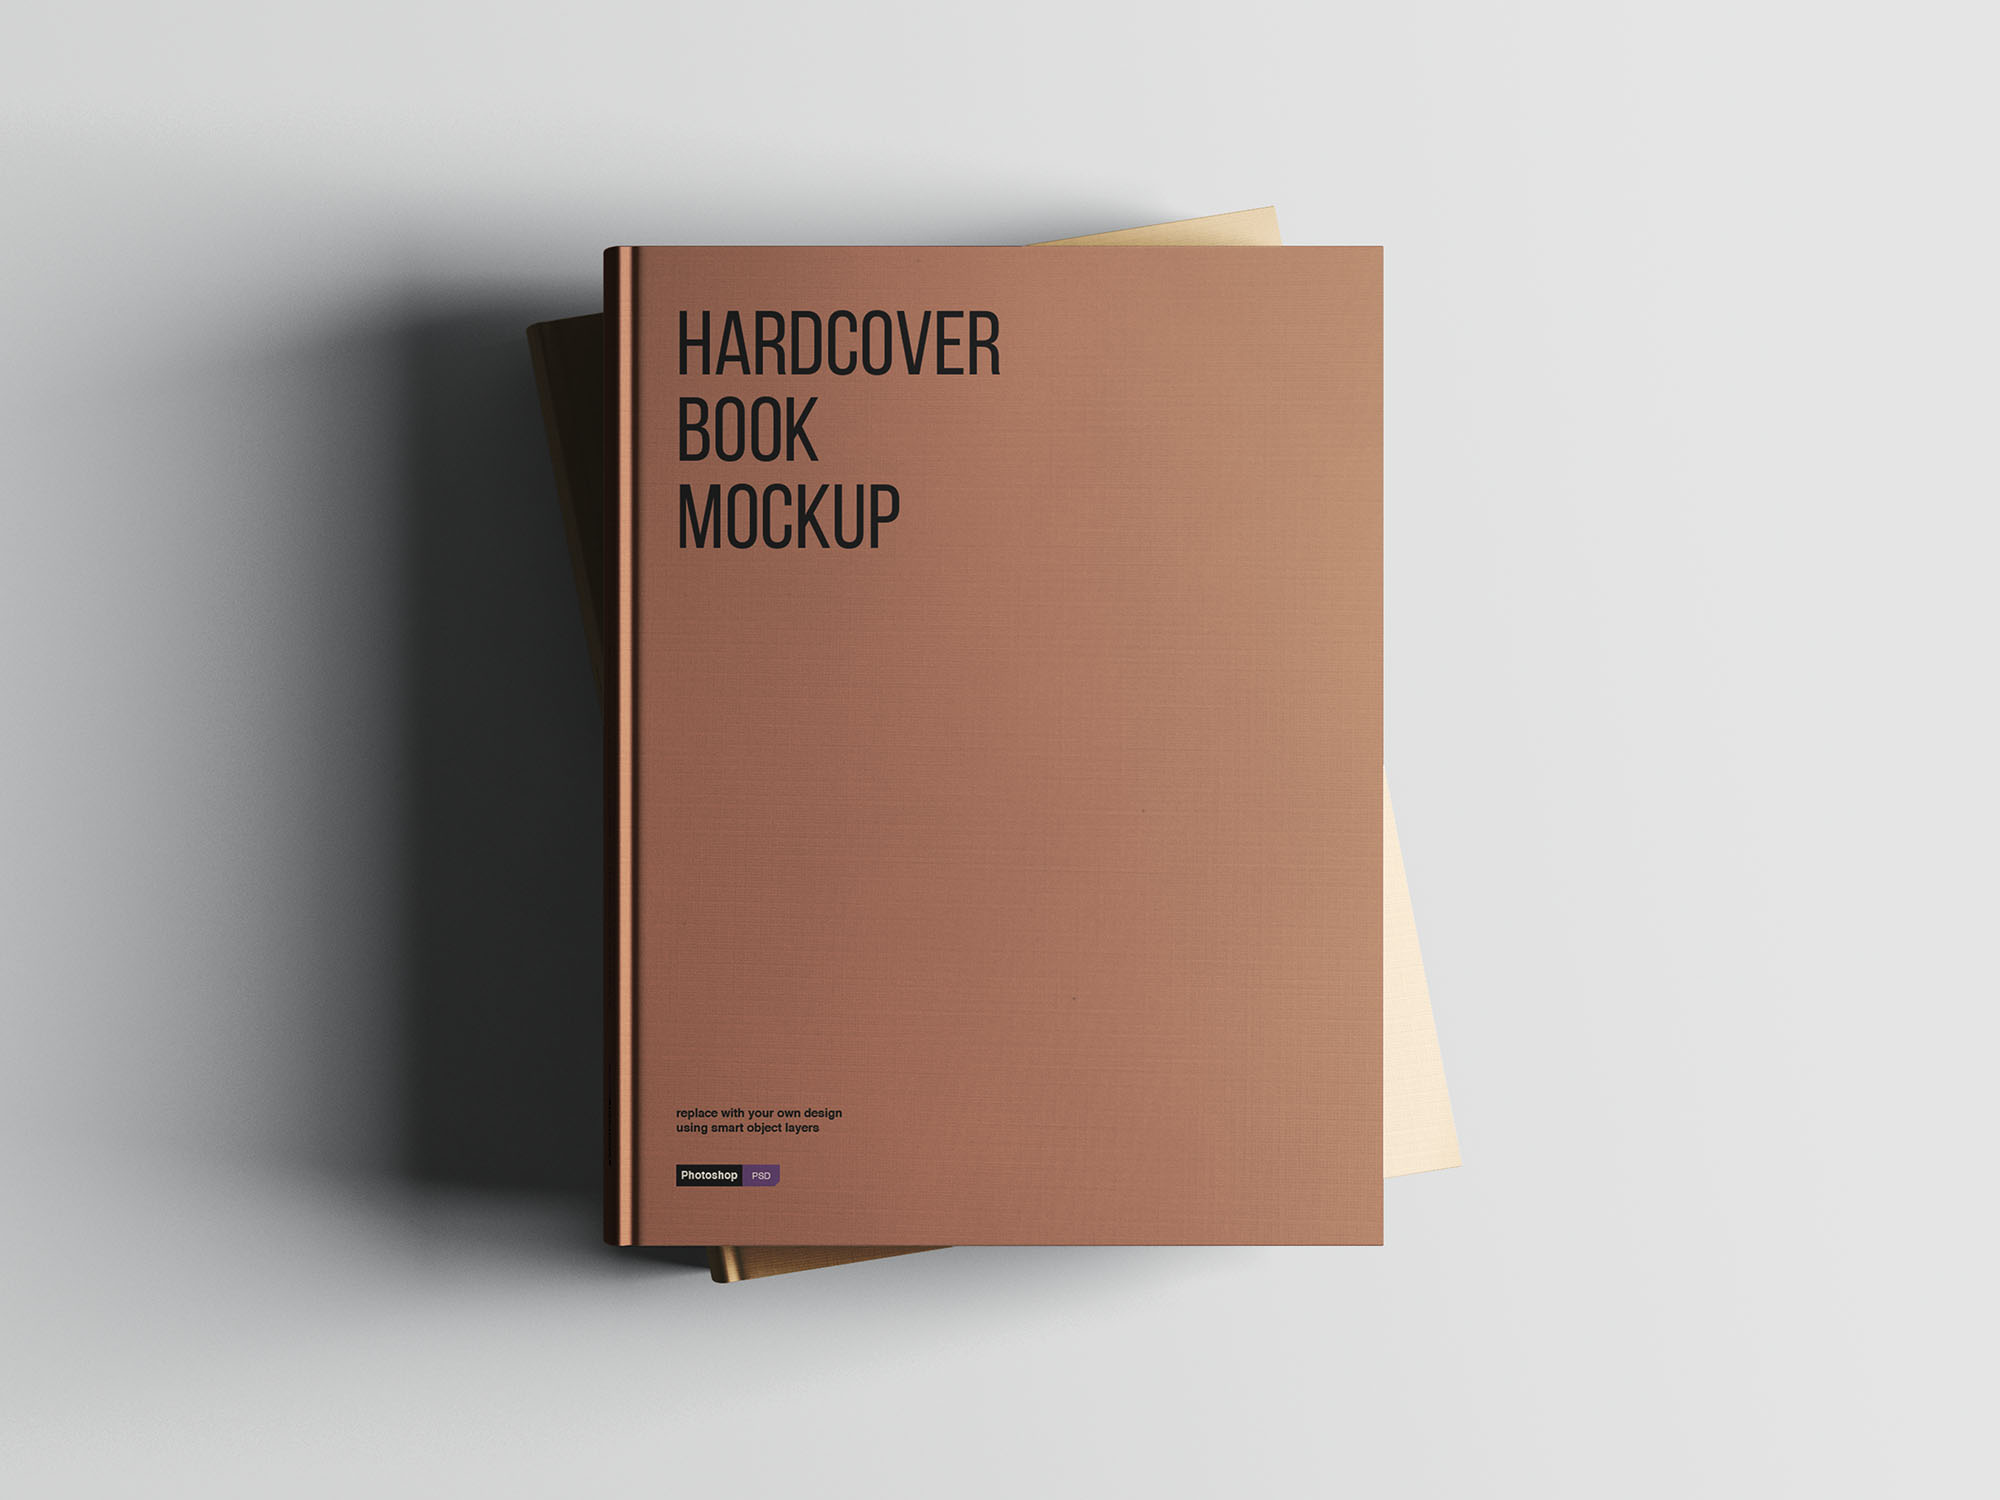 Hardcover A4 Book Mockup 04